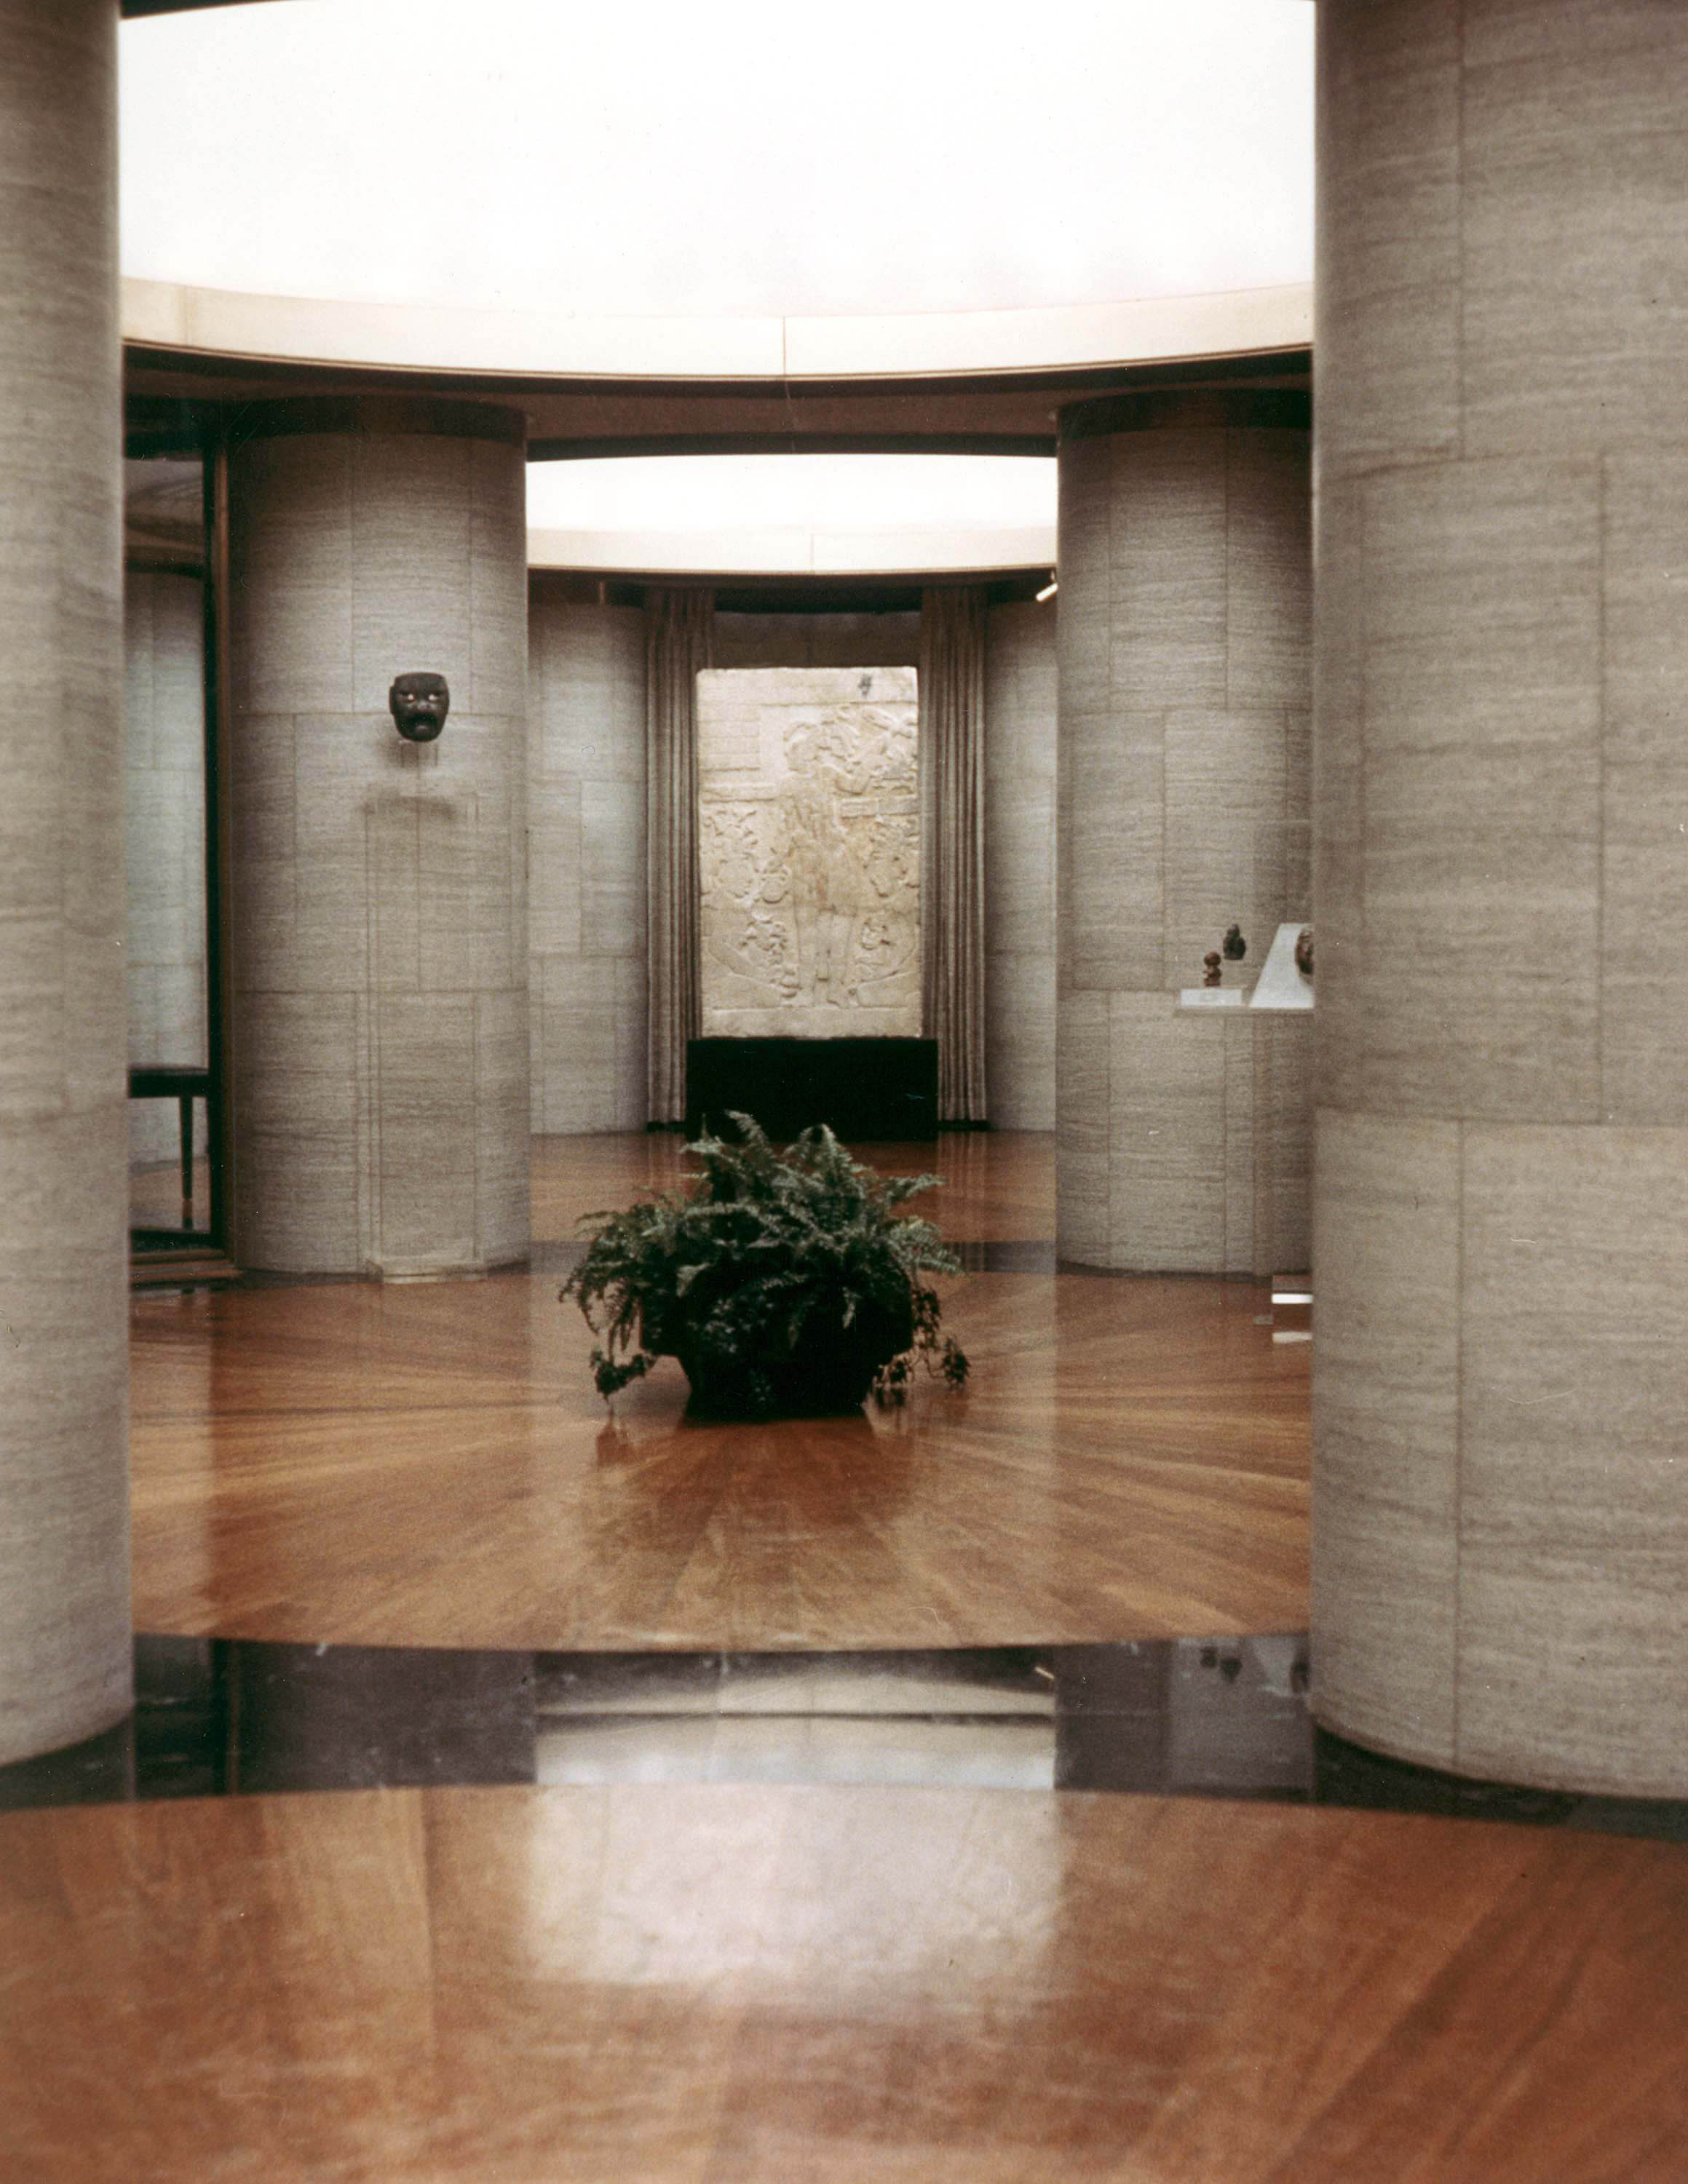 postmodern interior architecture. Philip Johnson At Dumbarton Oaks: Figure 38 Postmodern Interior Architecture